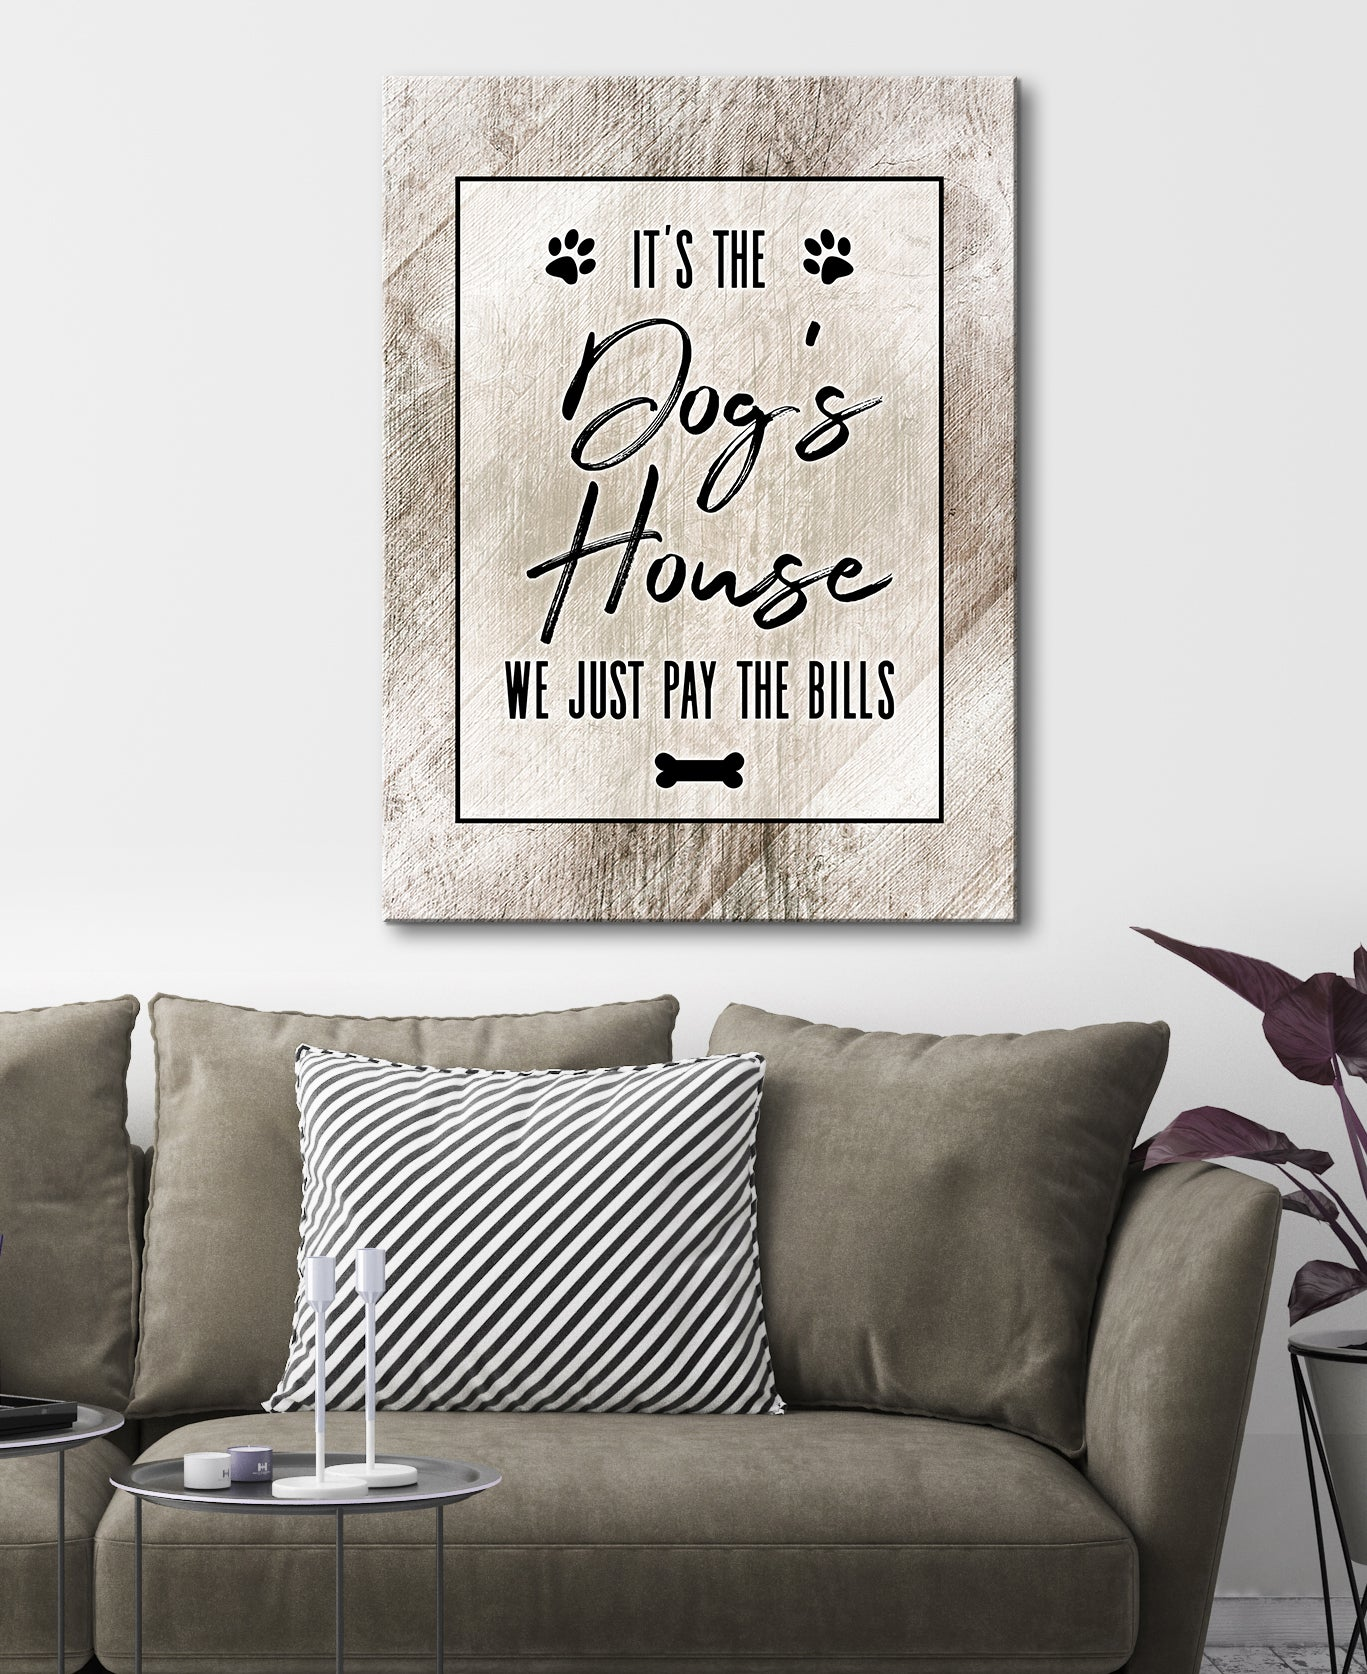 Pet Wall Art: Dogs House We Just Pay The Bills (Wood Frame Ready To Hang)